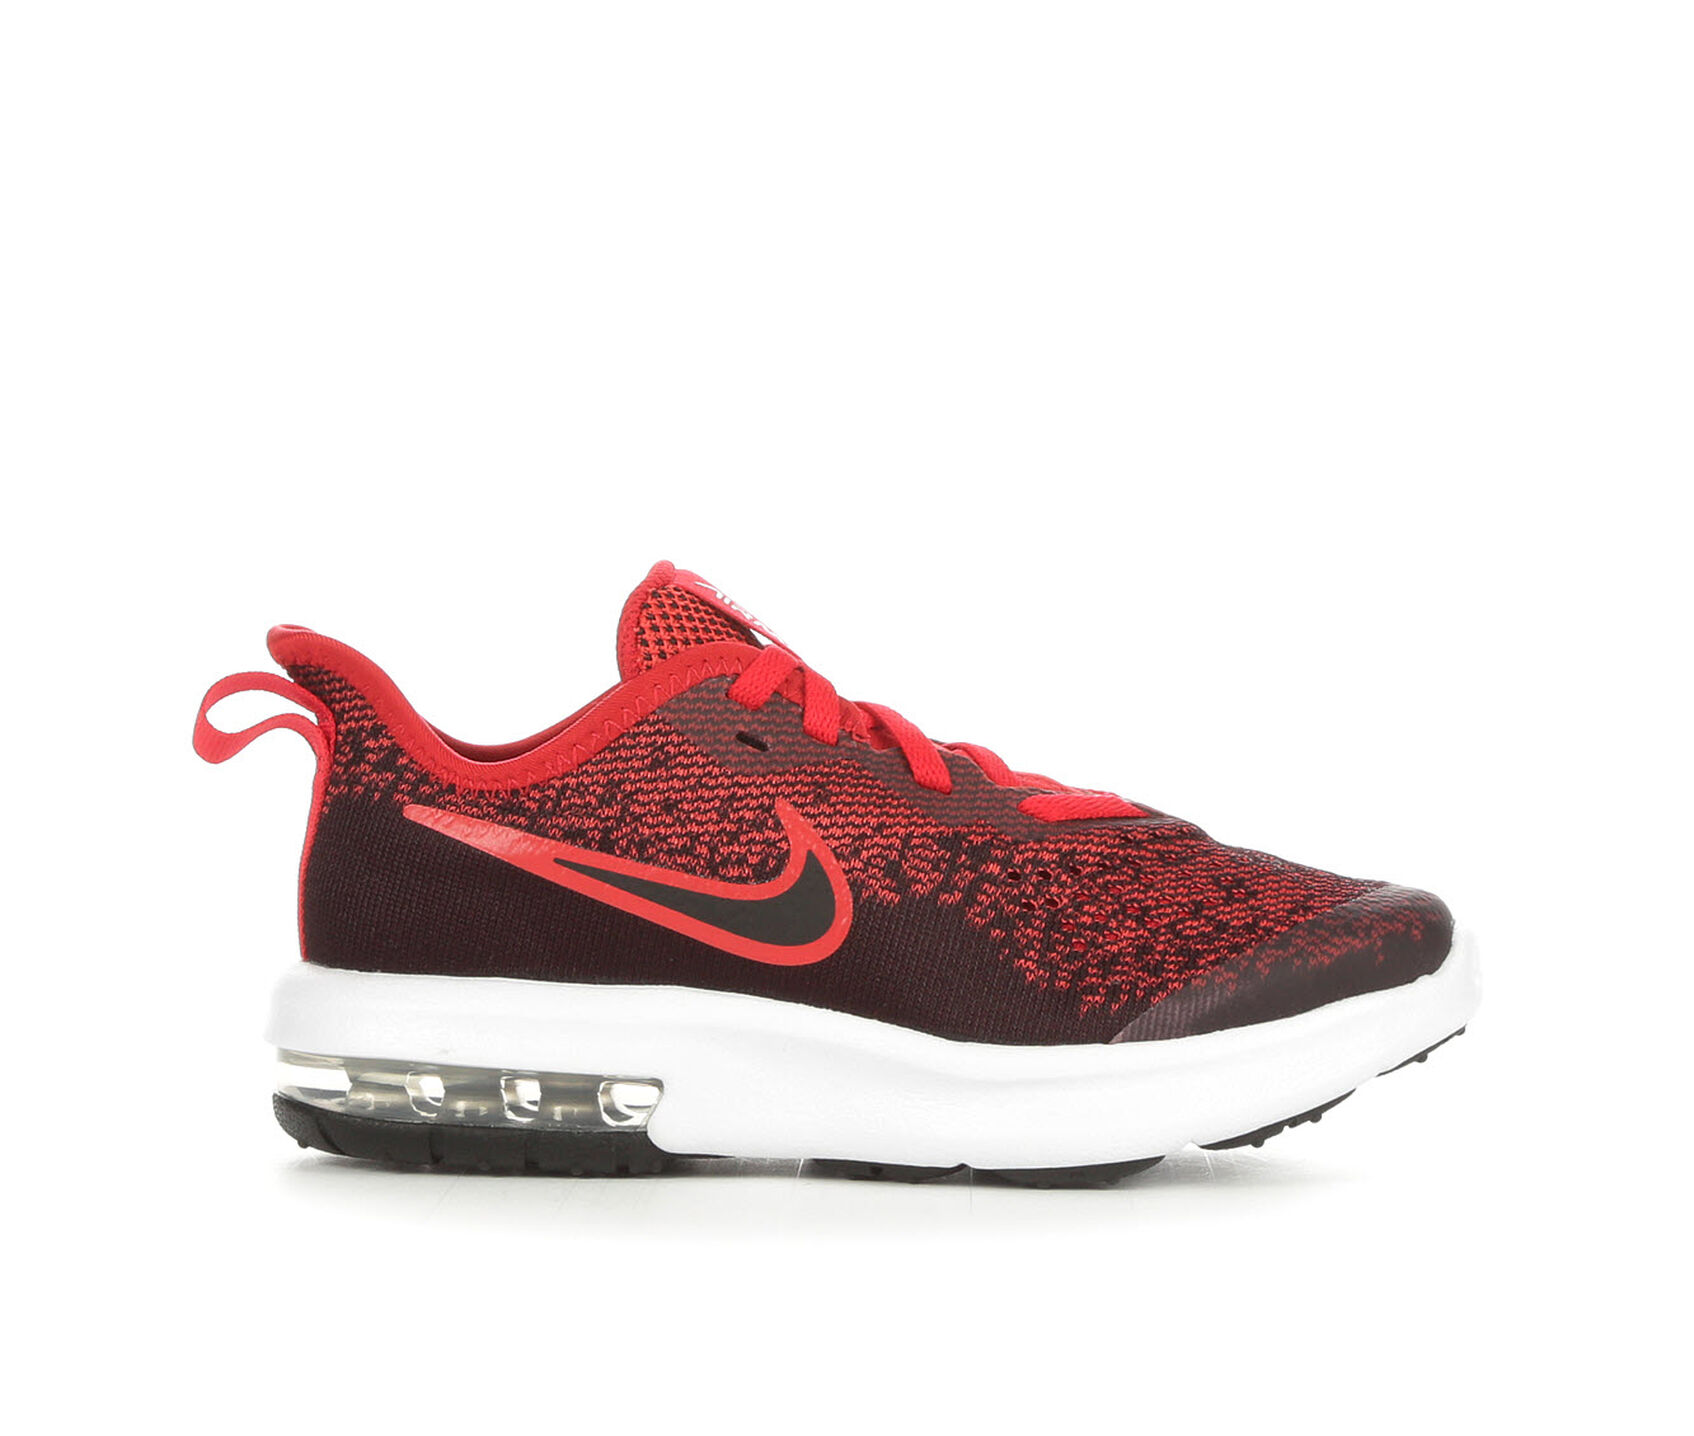 b0df590a96d Boys' Nike Little Kid Air Max Sequent 4 Running Shoes | Shoe Carnival